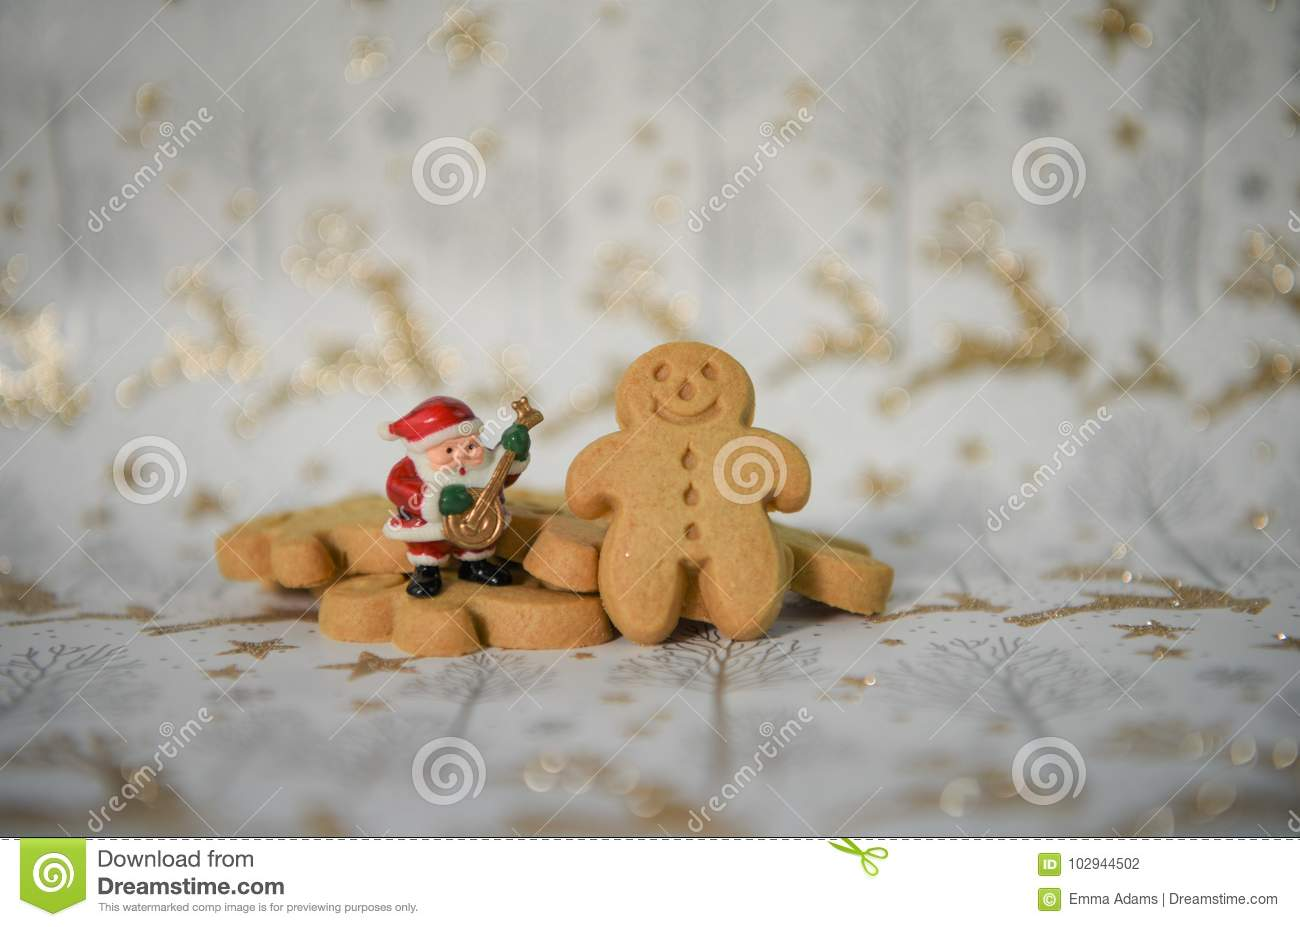 Christmas food photography gingerbread man mini music santa claus on gold reindeer glitter xmas wrapping paper background